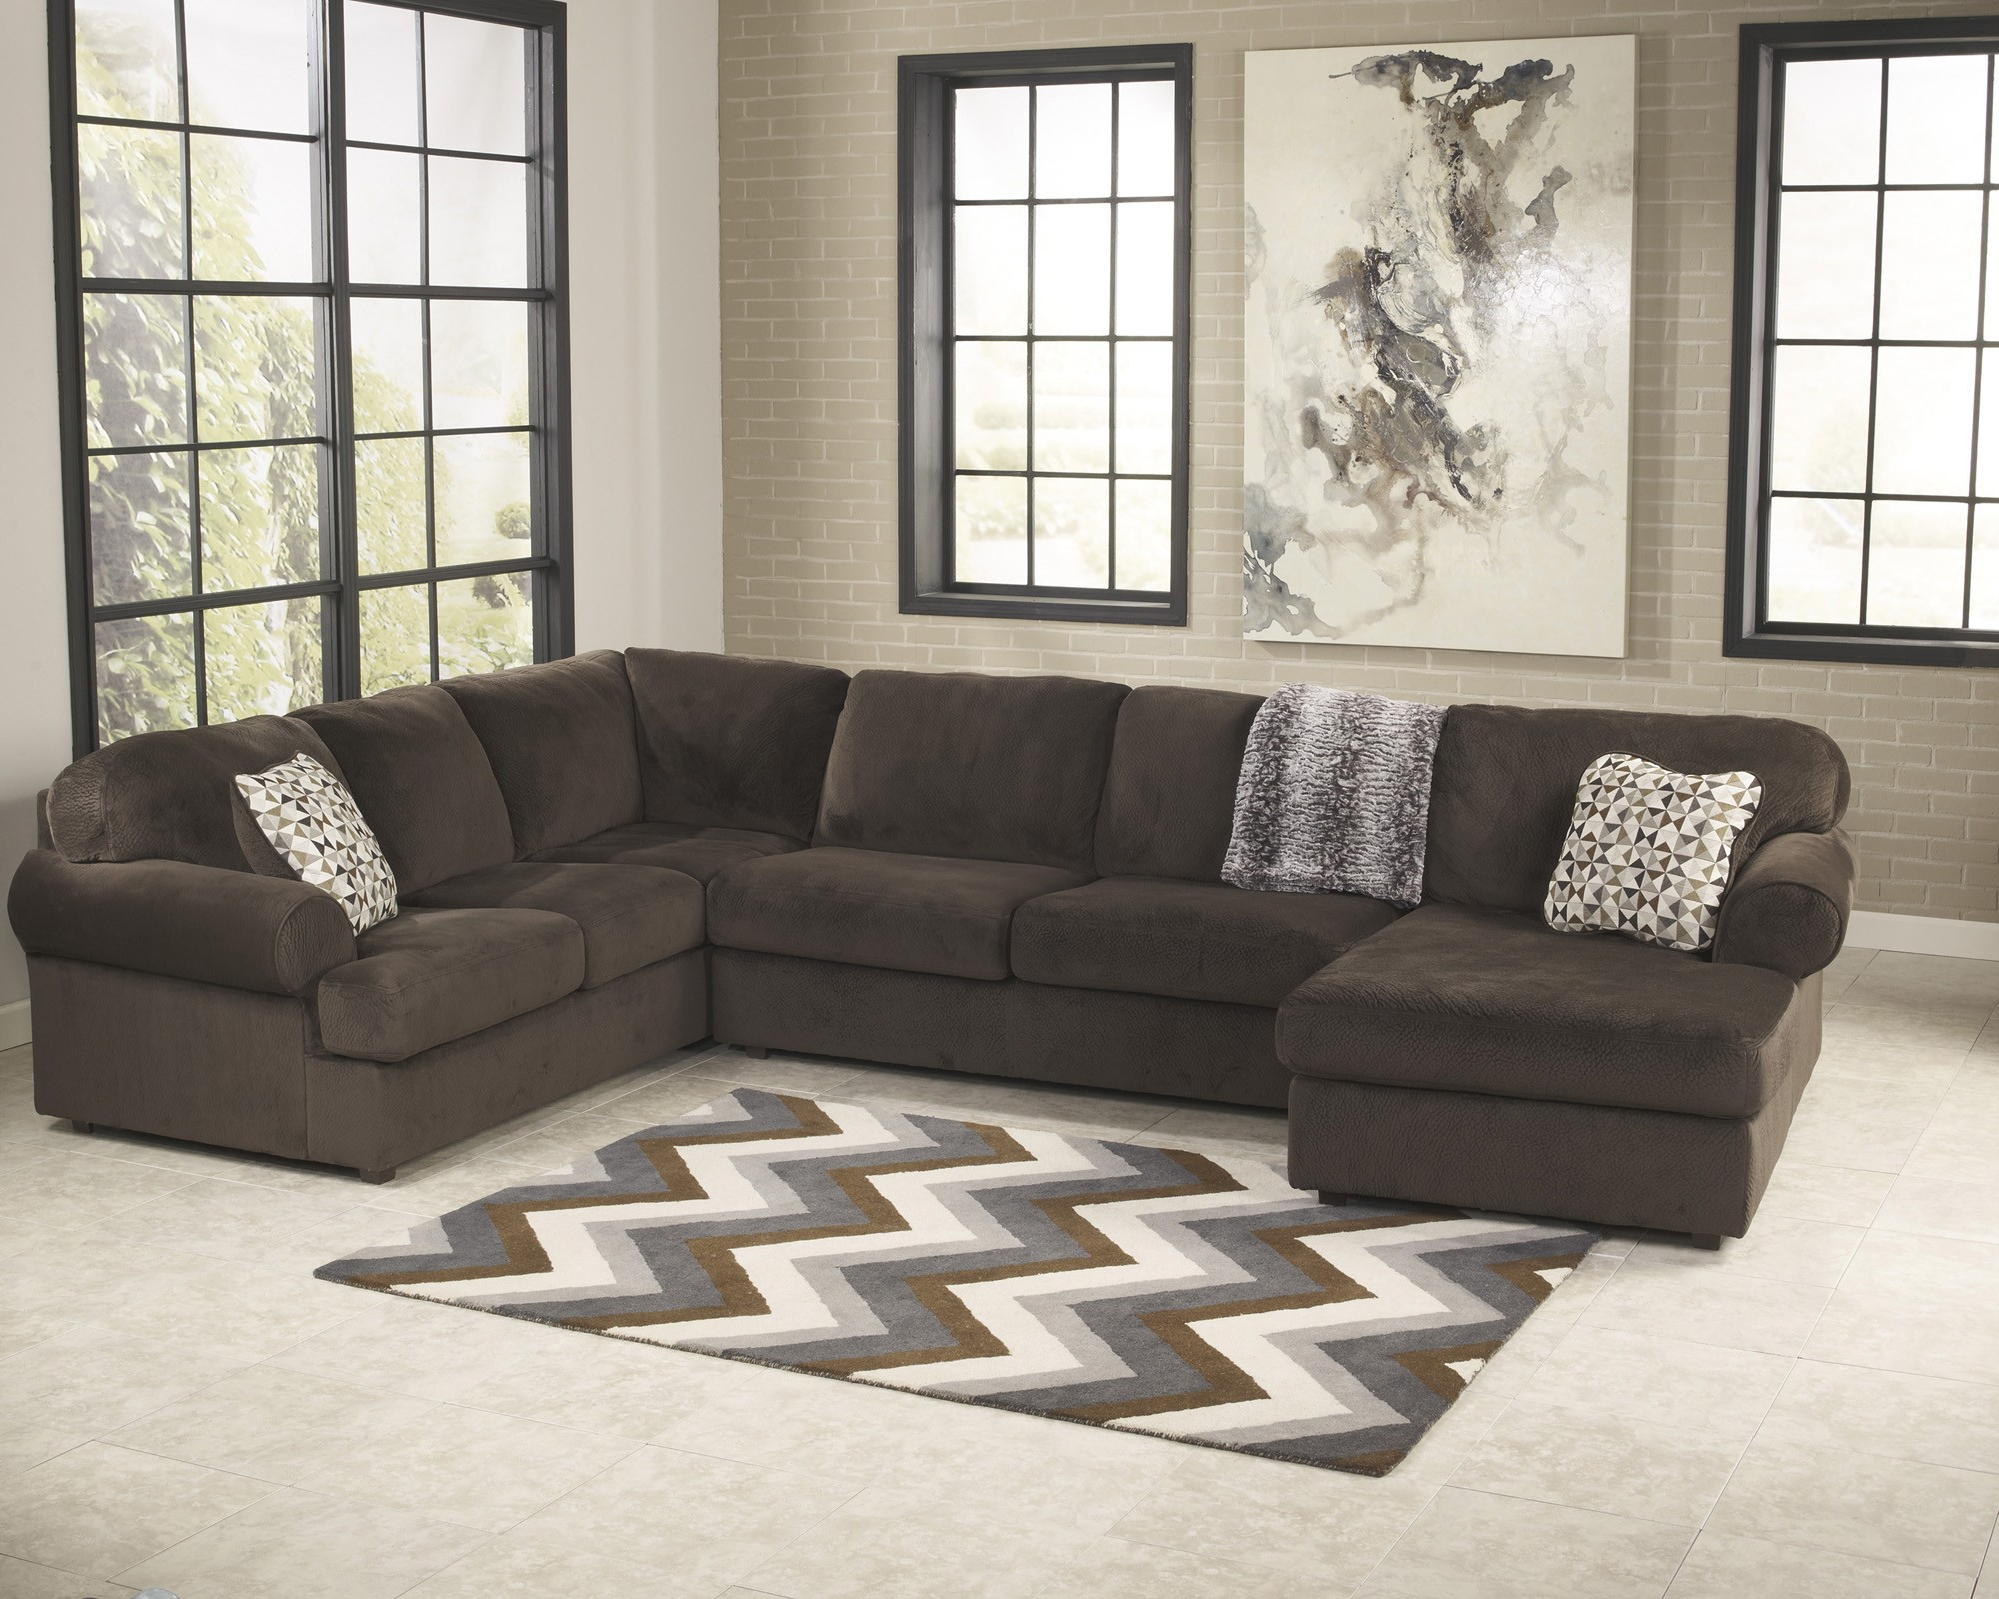 3 Chaise Sectional With Regard To Recent Malbry Point 3 Piece Sectionals With Laf Chaise (View 2 of 20)